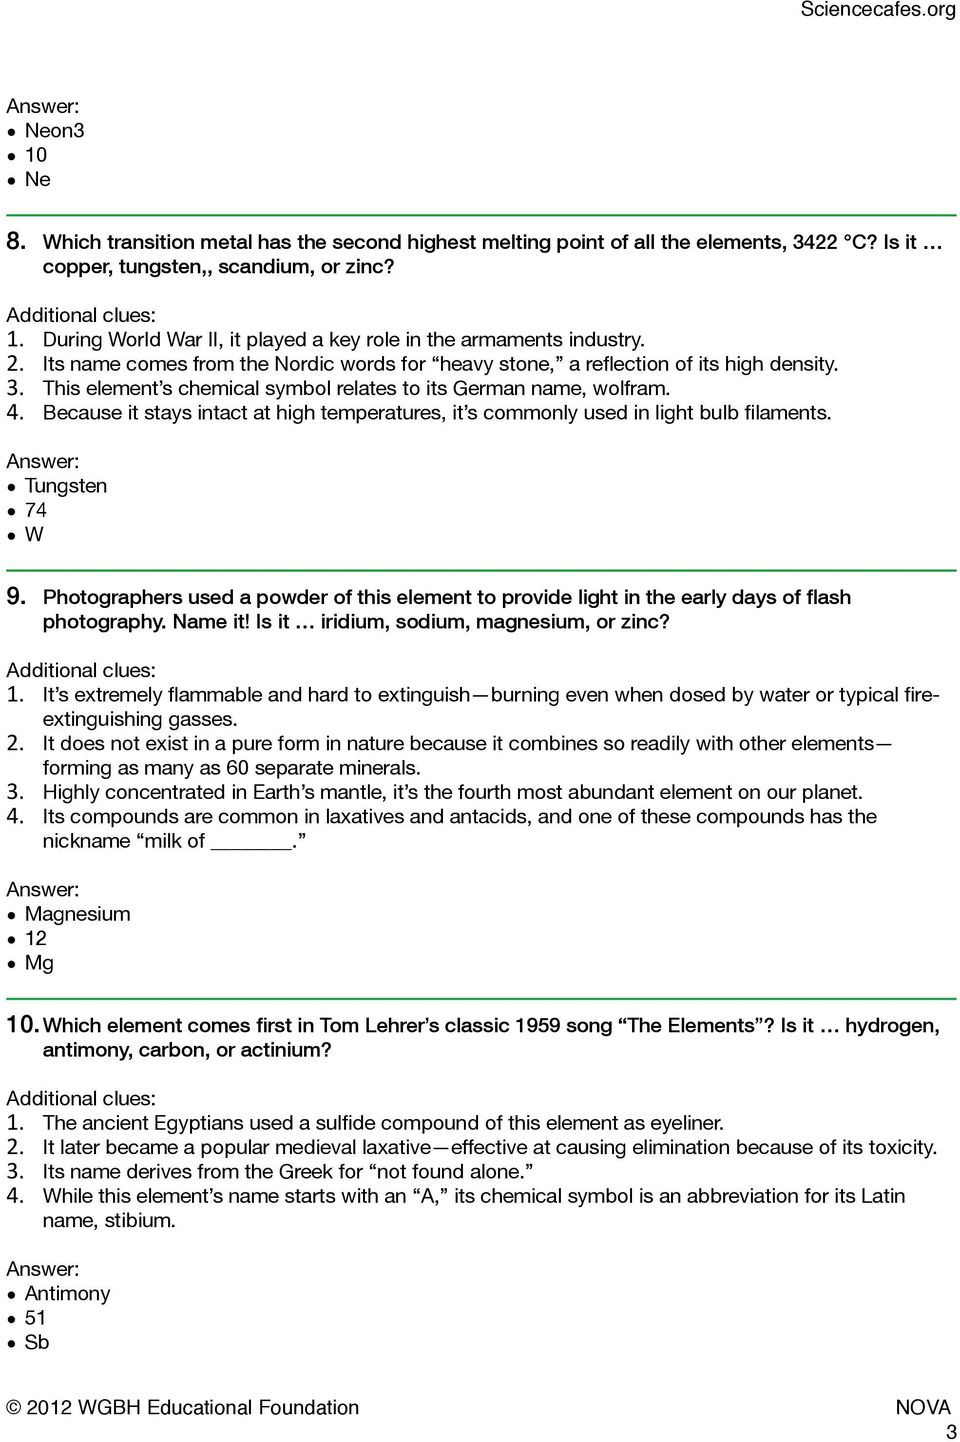 Nova Hunting the Elements Worksheet Mystery Elements and Clues Inspired From Nova S Hunting the